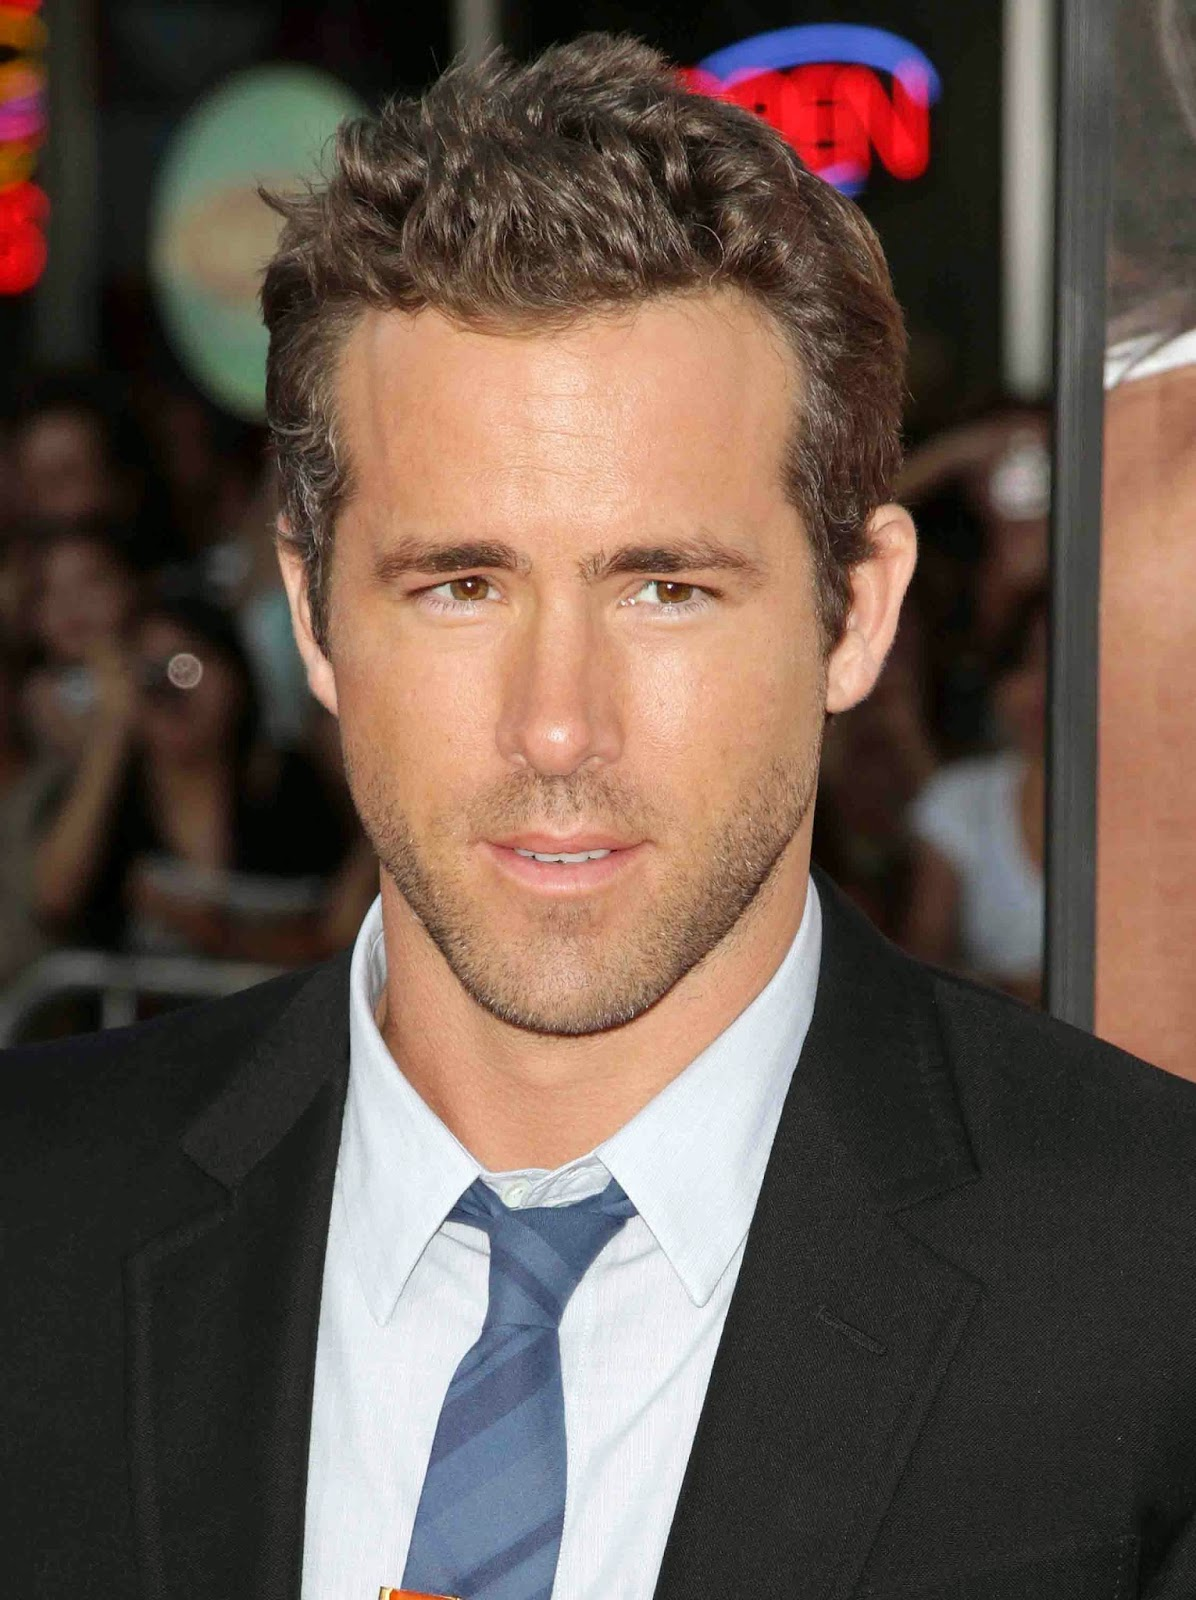 Times Square Gossip: RYAN REYNOLDS 'CRAZY EXPERIENCE' OF ... Ryan Reynolds